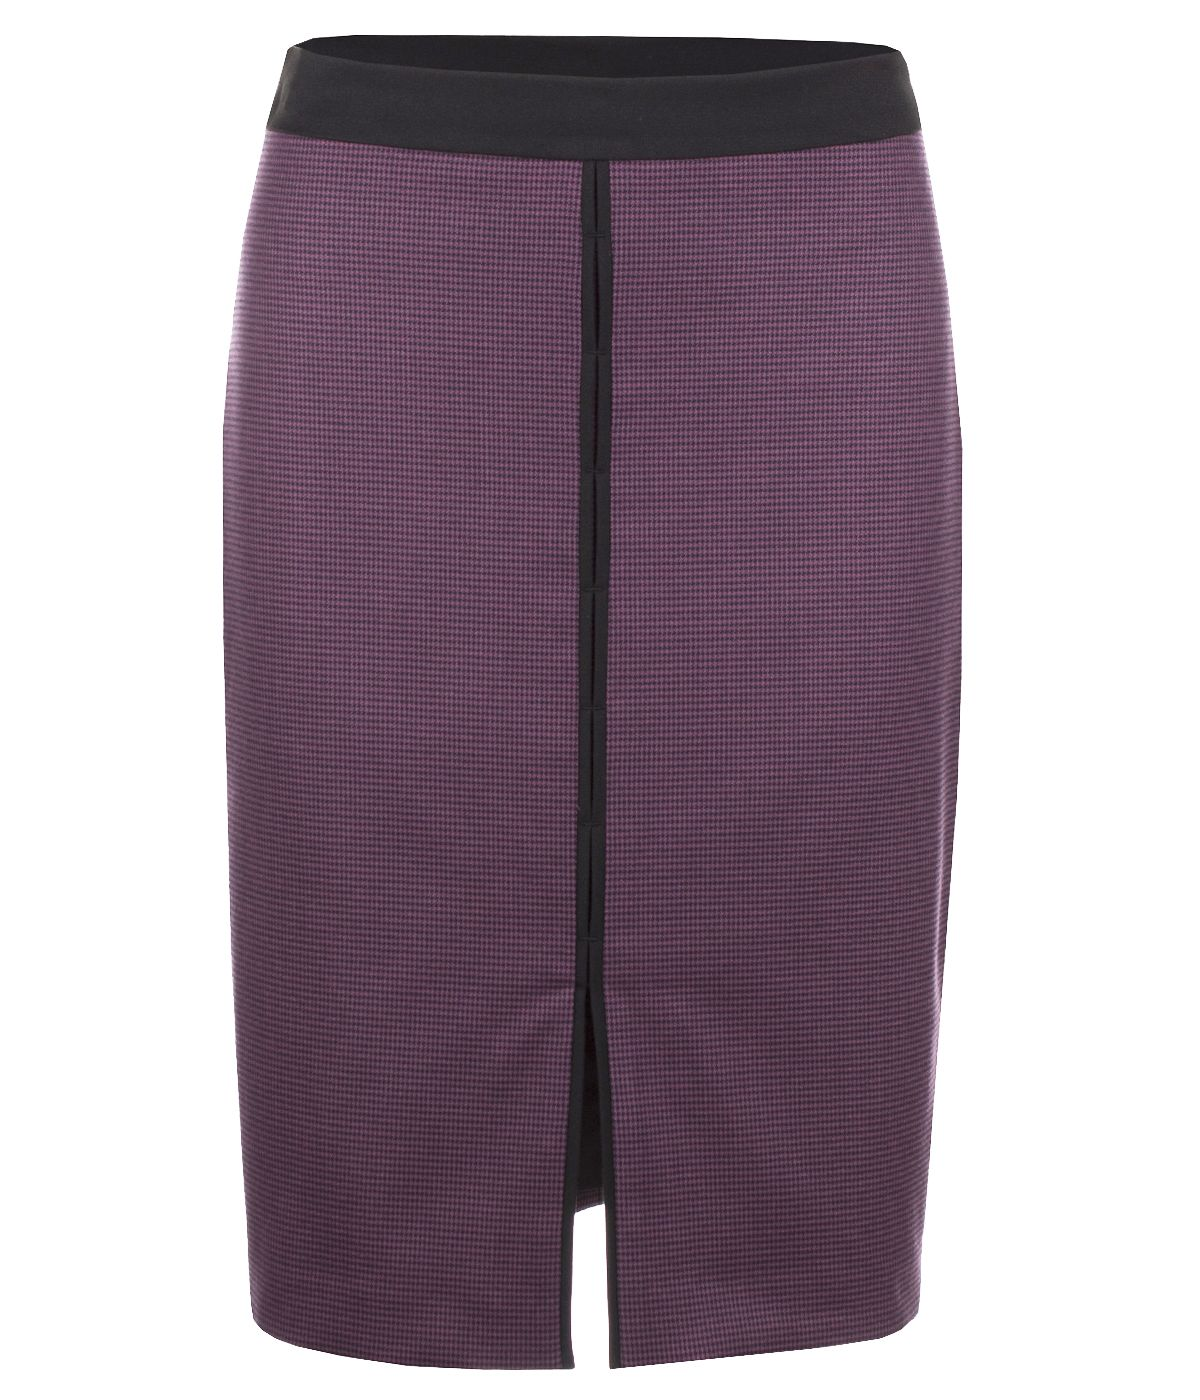 PENCIL SKIRT WITH FRONT SLIT 0